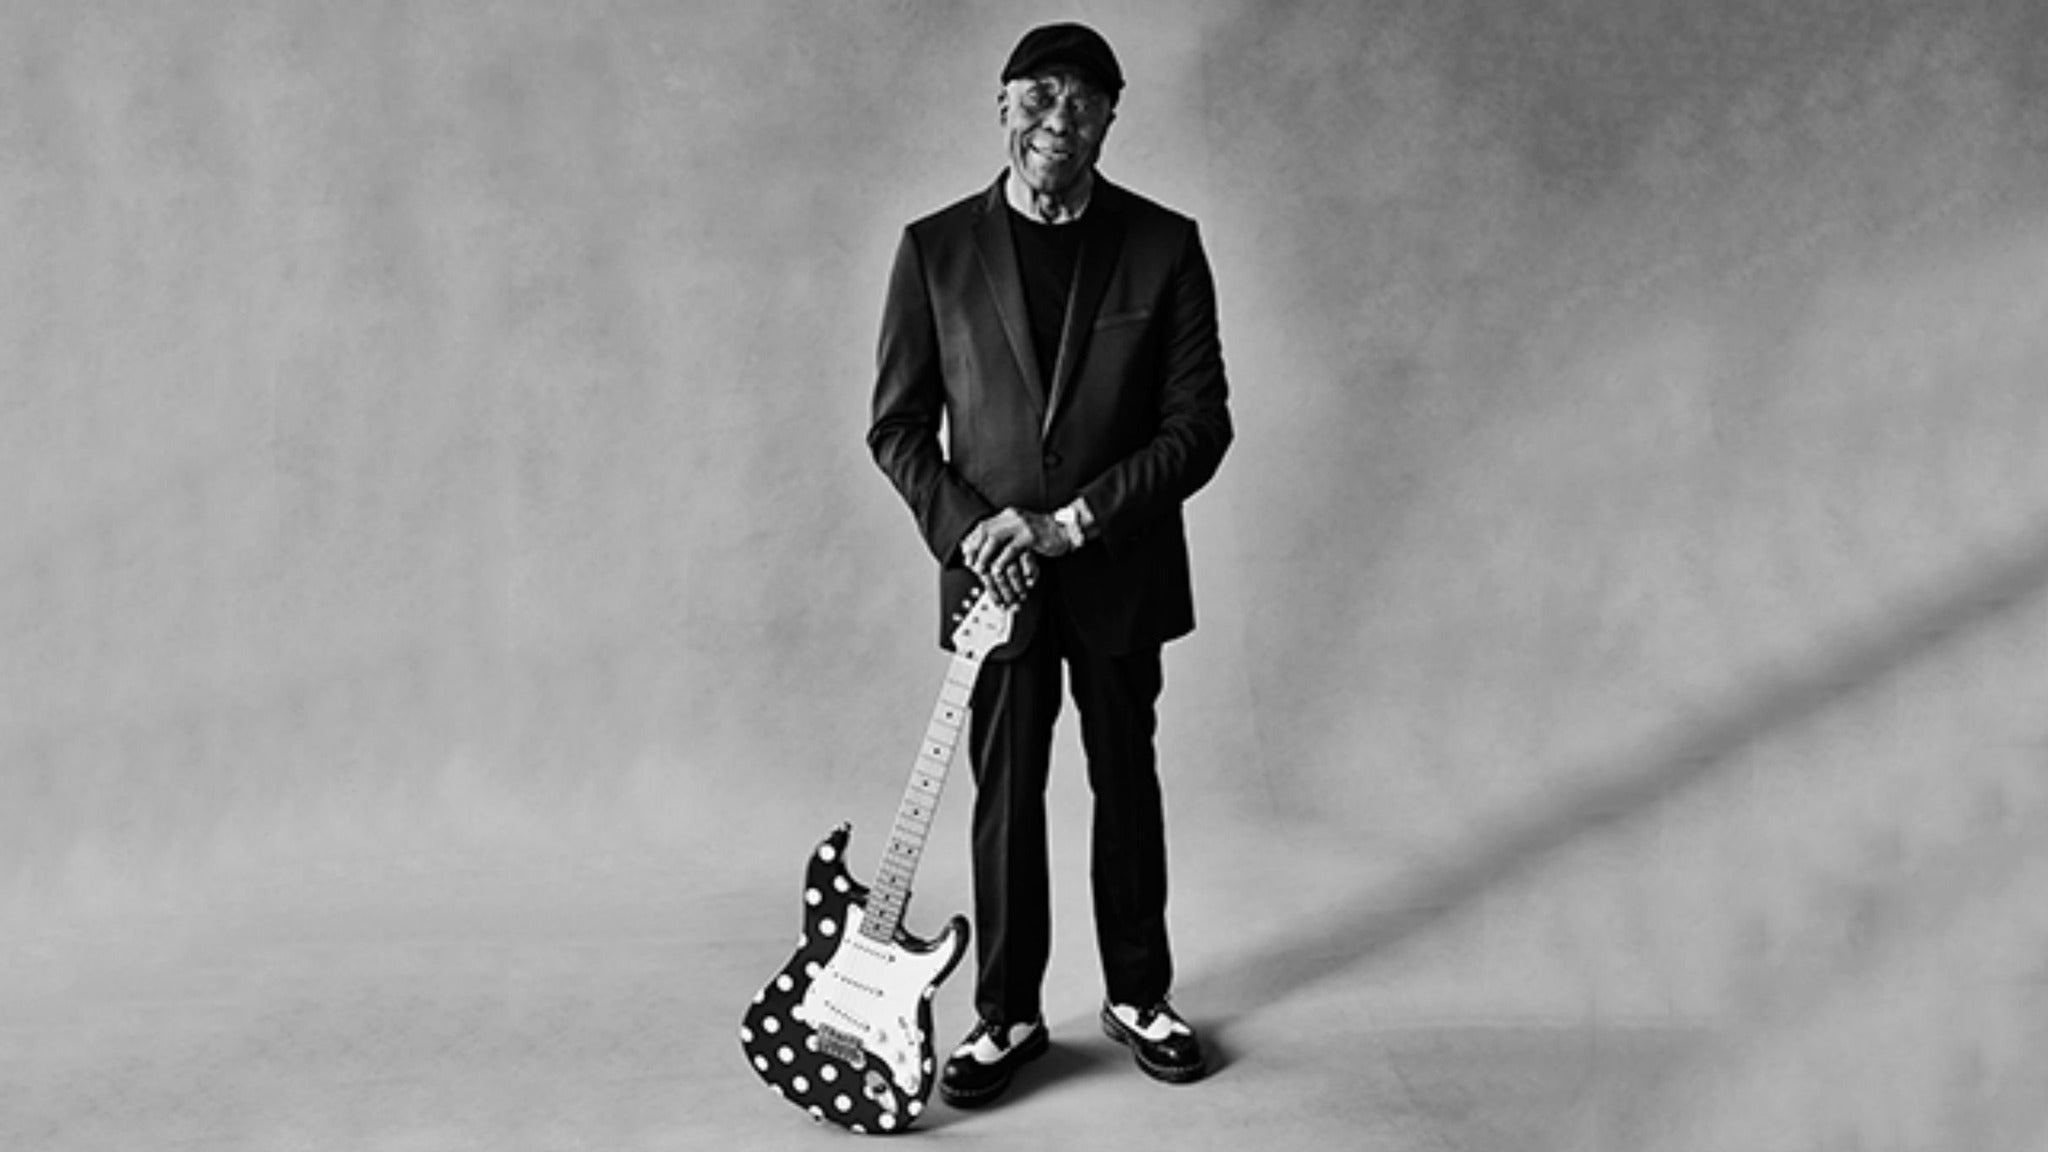 Buddy Guy at California Center for the Arts